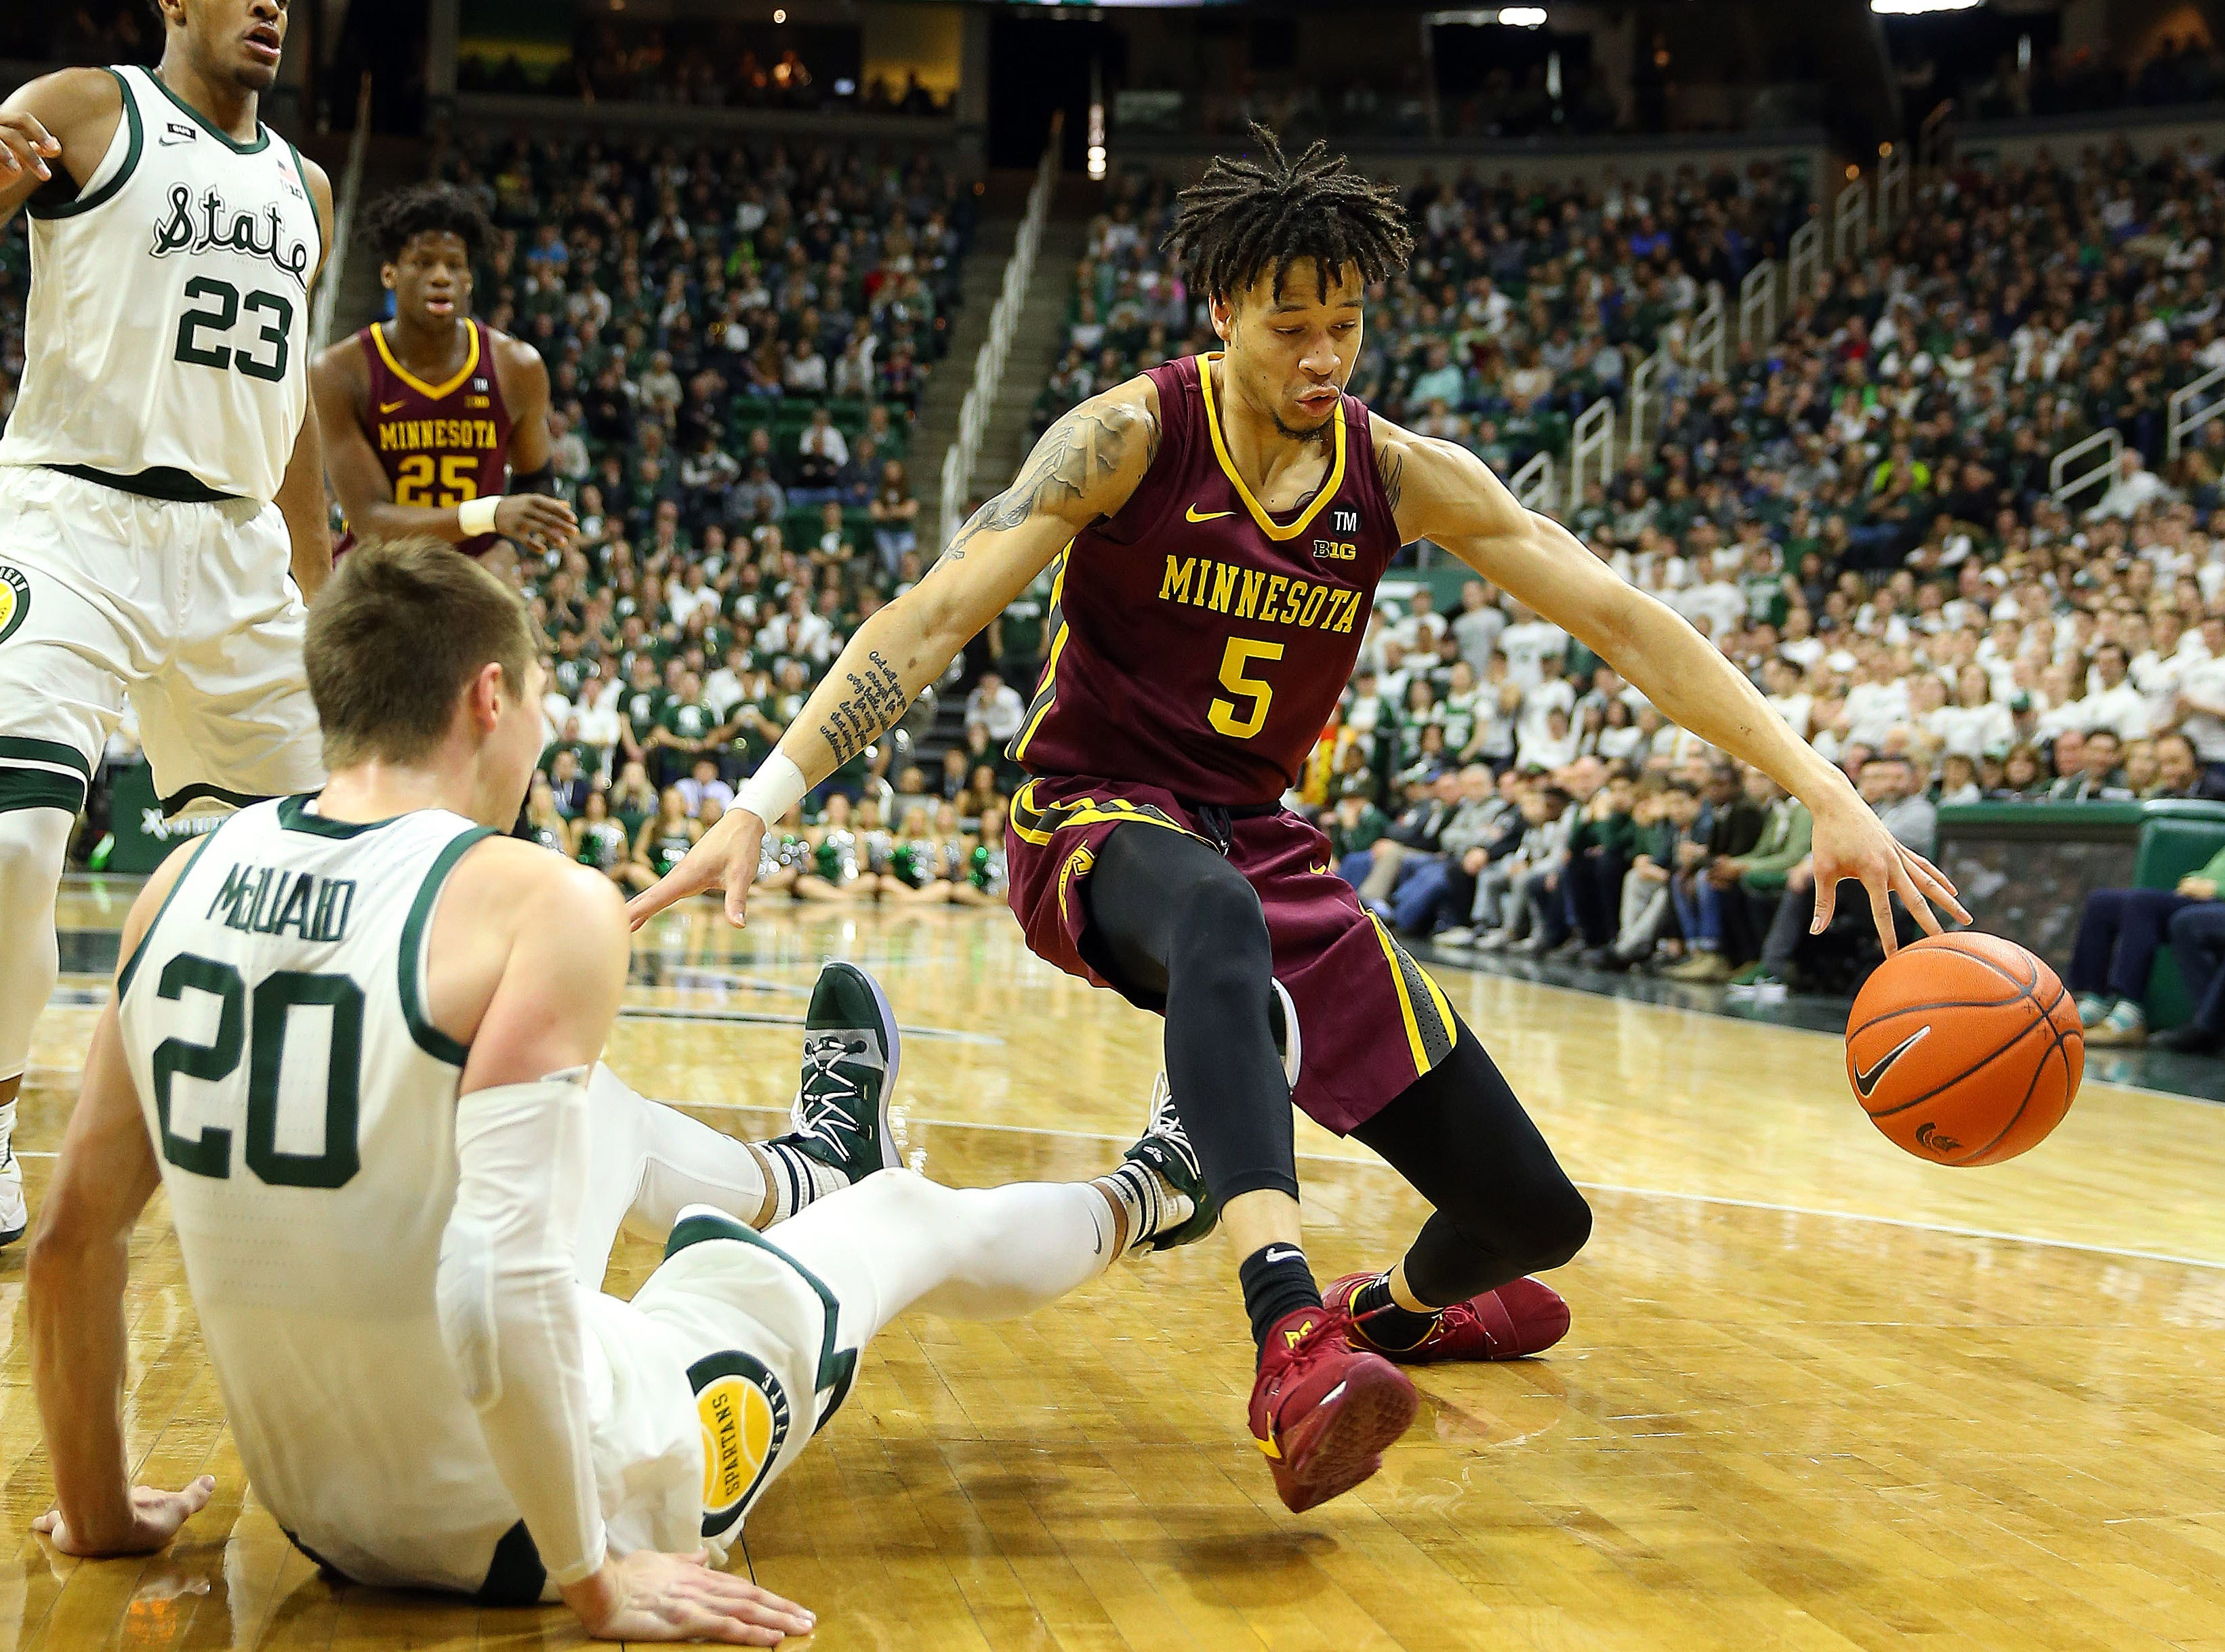 Feb 9, 2019; East Lansing, MI, USA; Michigan State Spartans guard Matt McQuaid (20) takes a charge against Minnesota Golden Gophers guard Amir Coffey (5) during the first half at the Breslin Center. Mandatory Credit: Mike Carter-USA TODAY Sports